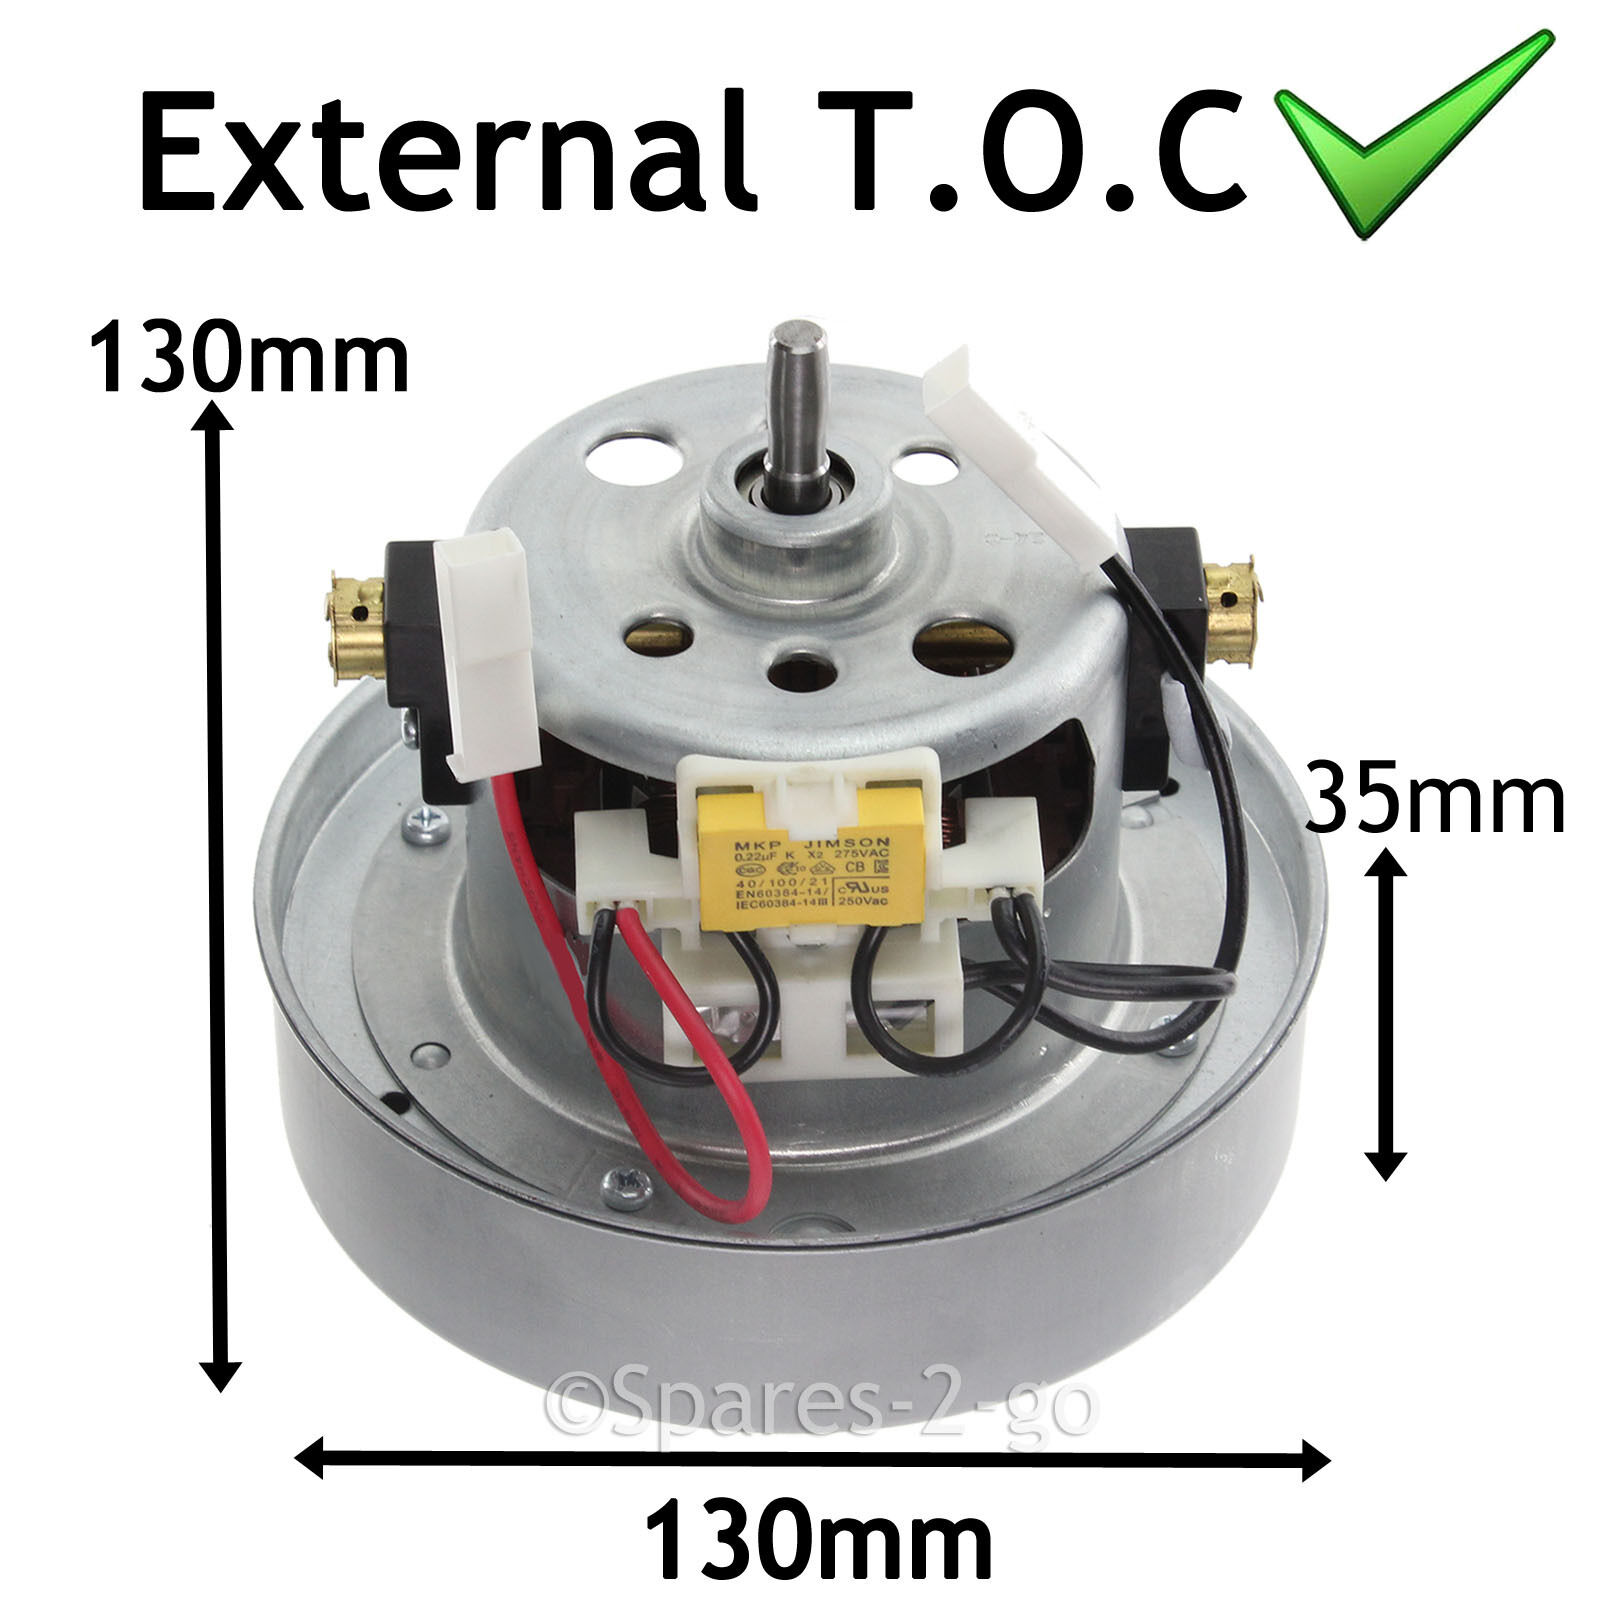 Ydk yv2200 type motor unit for dyson dc27 dc33 vacuum for Dyson motor replacement cost